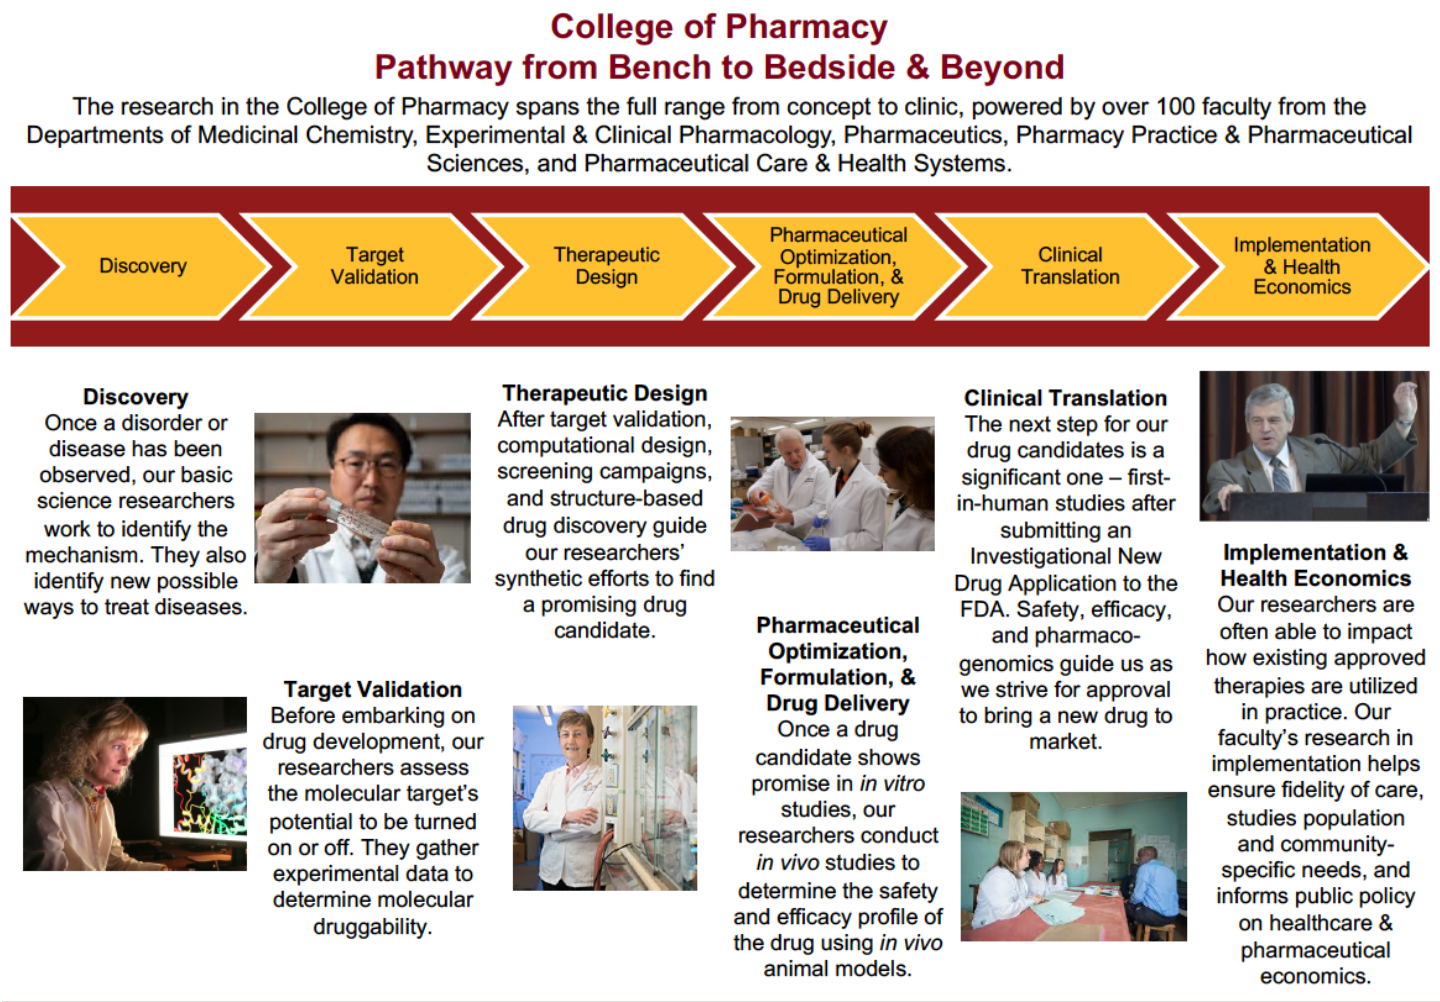 Pathway from Bench to Bedside and Beyond